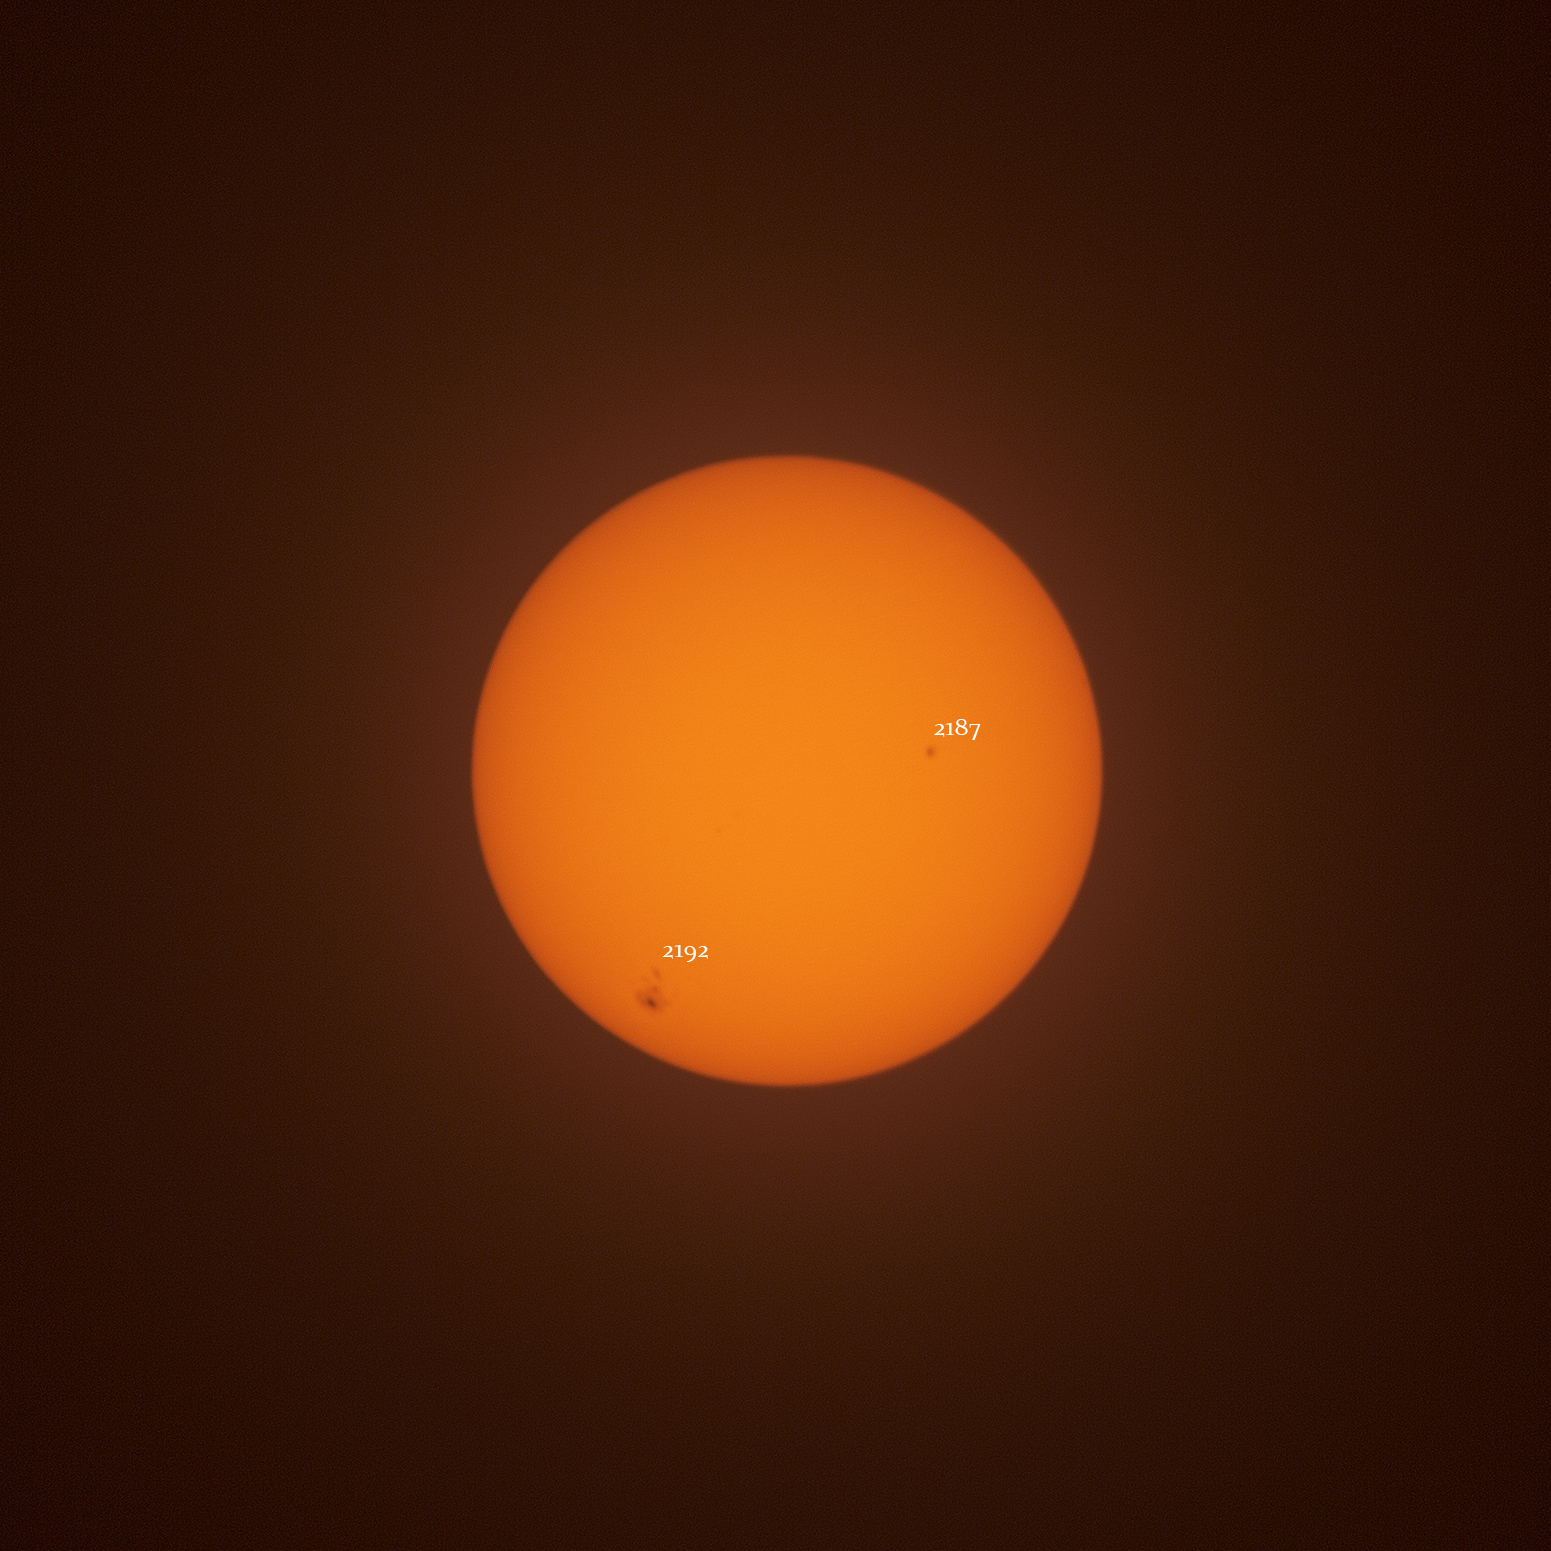 sunspots DSLR 300mm